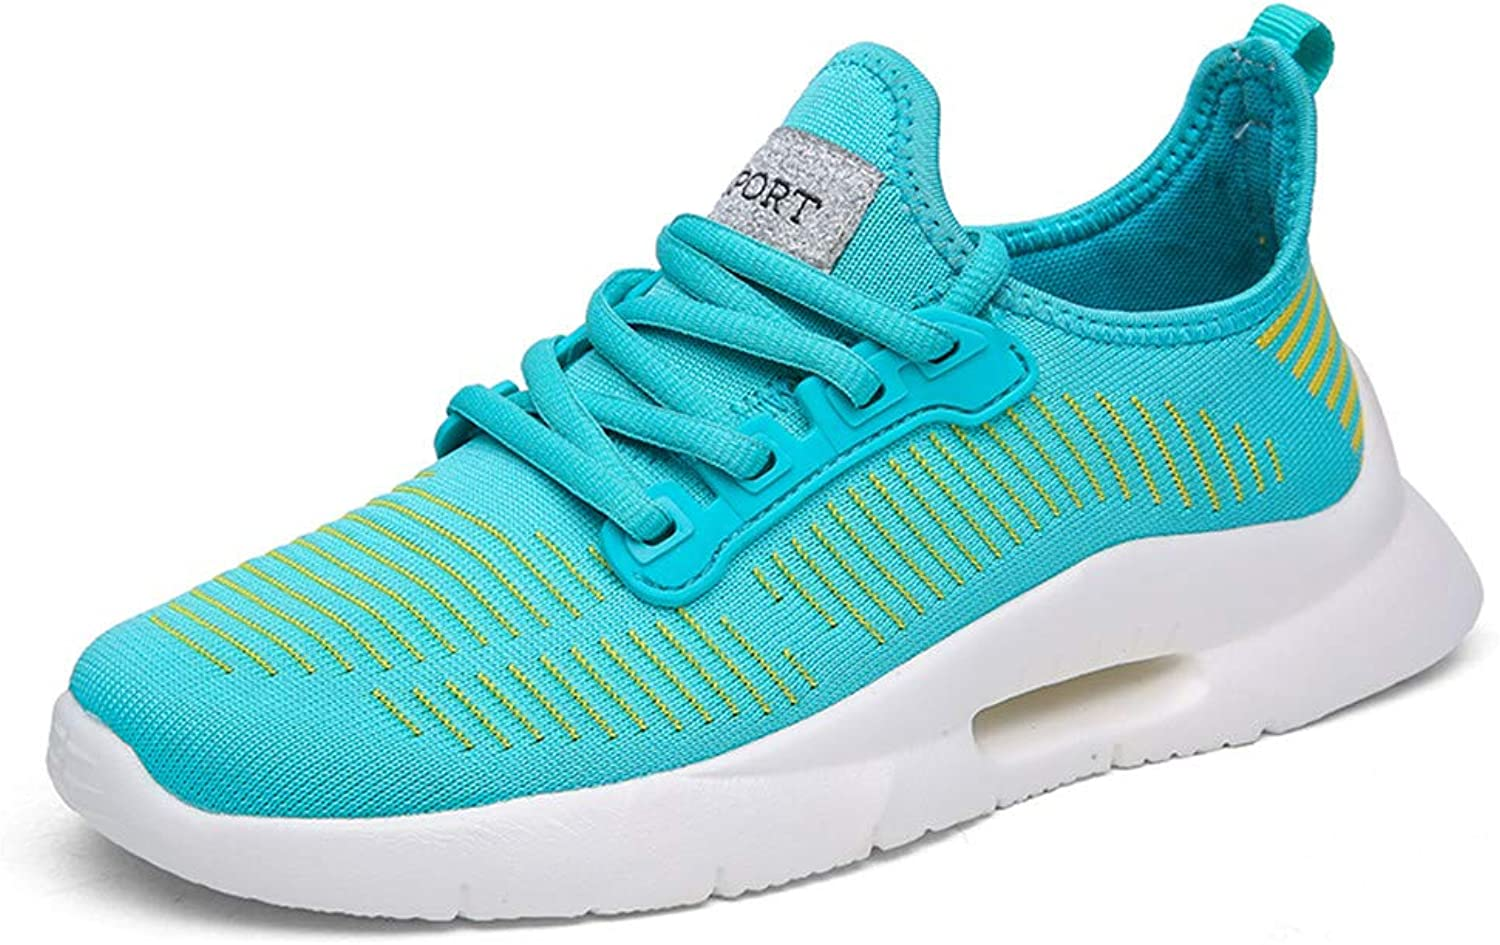 TORISKY Sneakers Trainers Men Women Running shoes Sport Road Casual Mesh Athletic Gym Fitness Outdoor